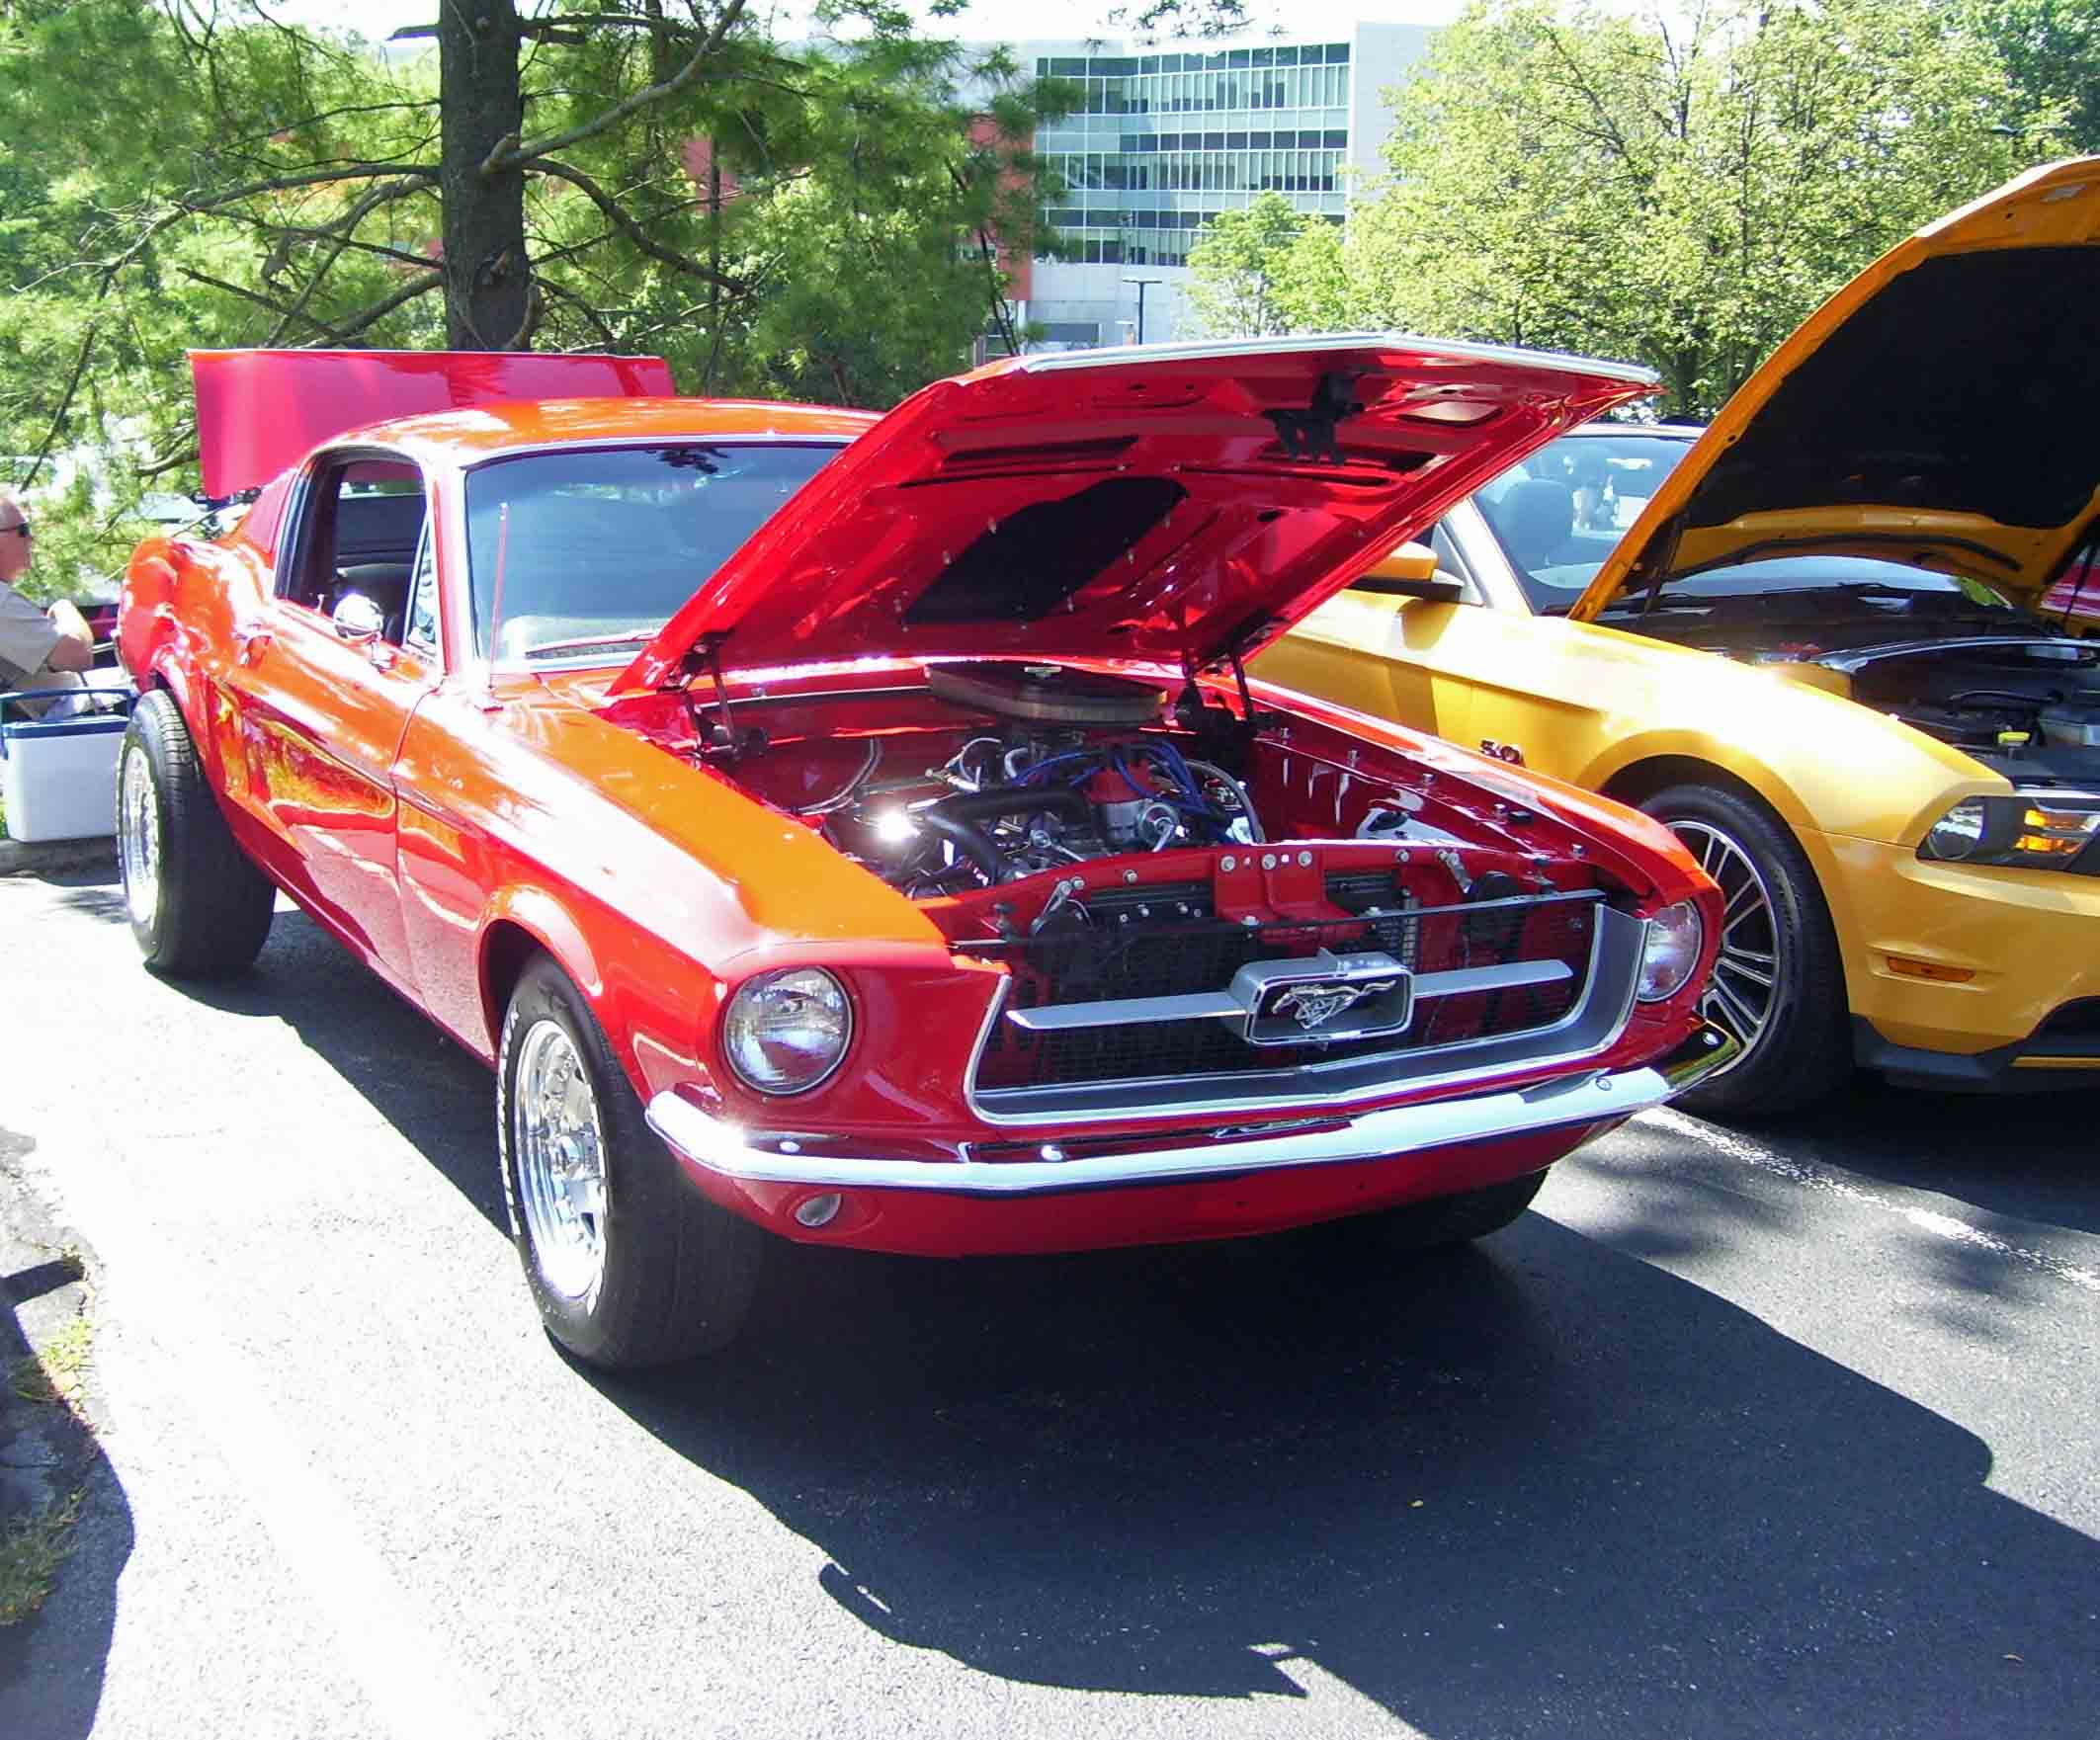 American Muscle Car Show Twin Tiers Mustang Club - Muscle car shows near me